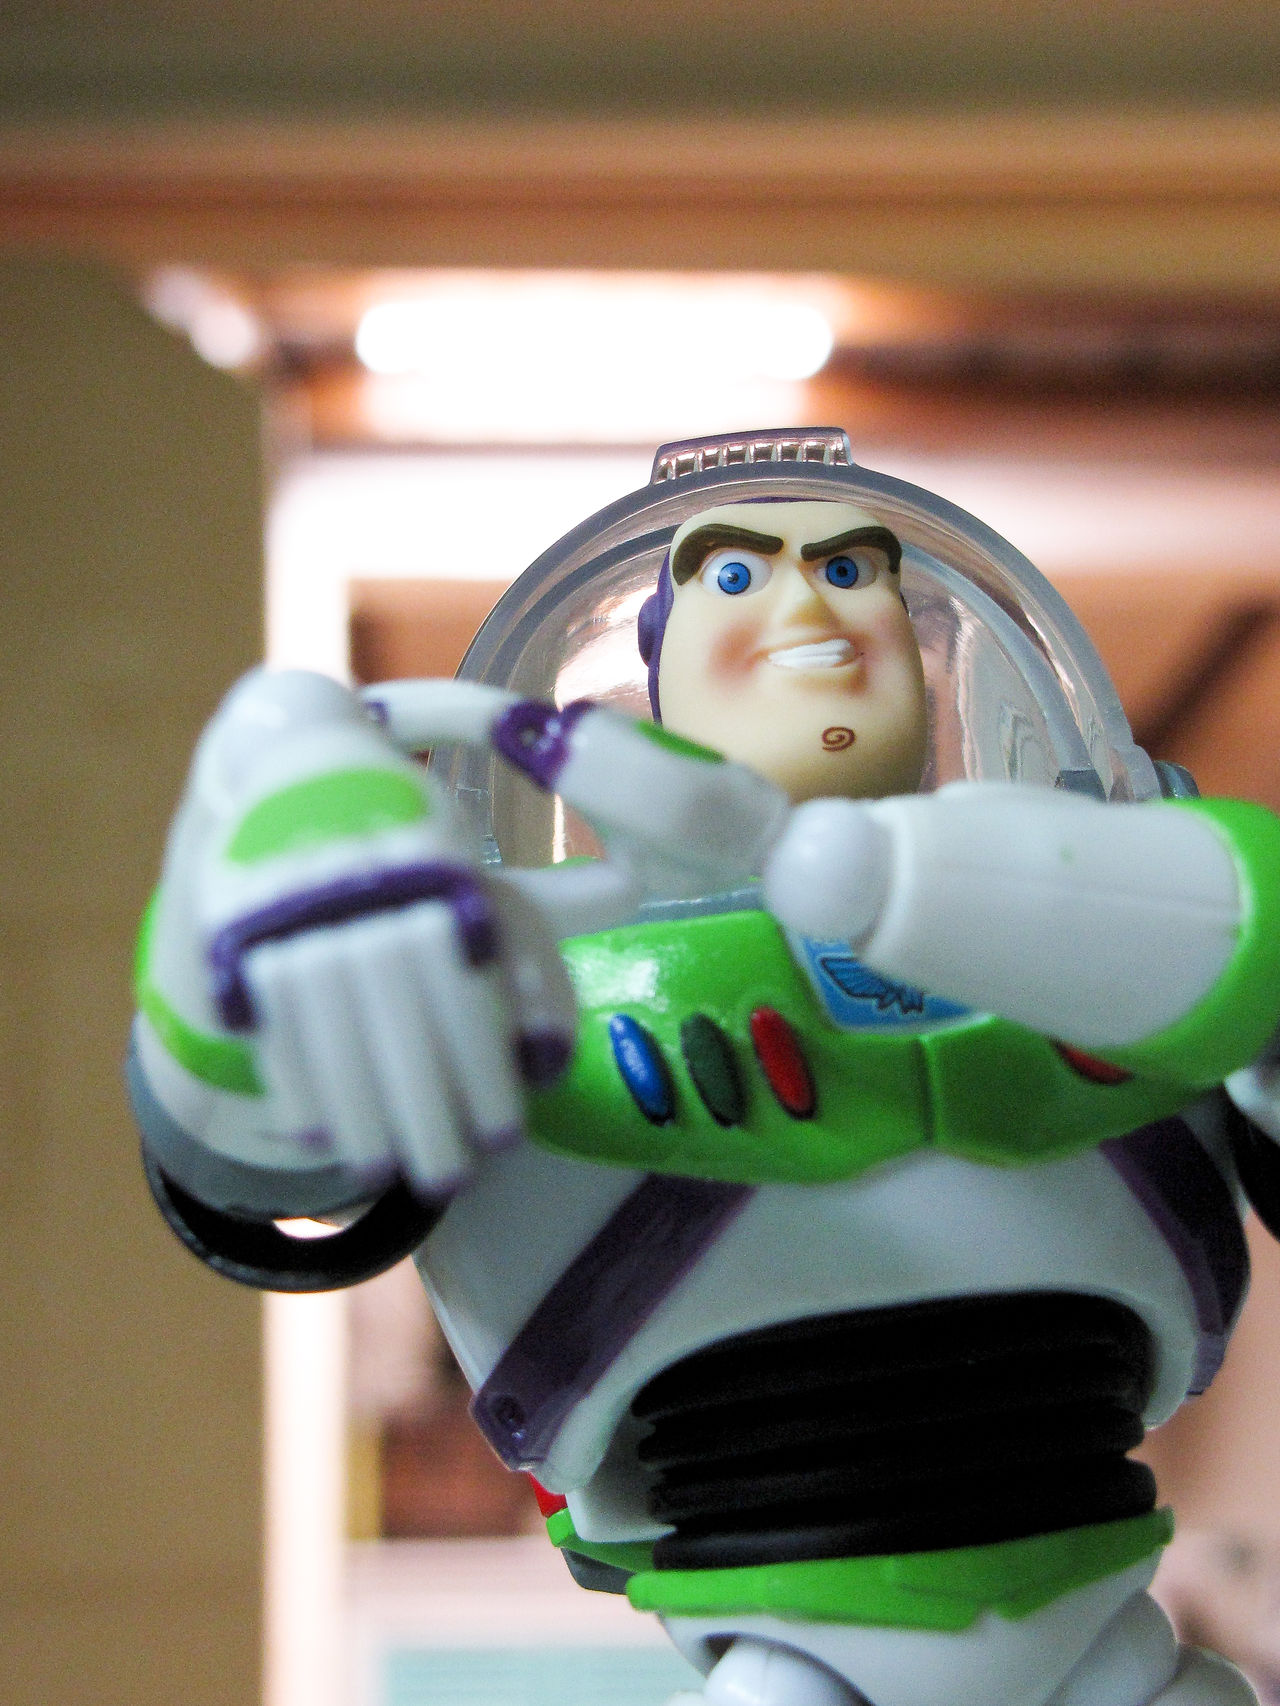 Animation Buzzlightyear Childhood Day Focus On Foreground MOVIE One Person Revoltech Standing Toy Toyphotography Toystory